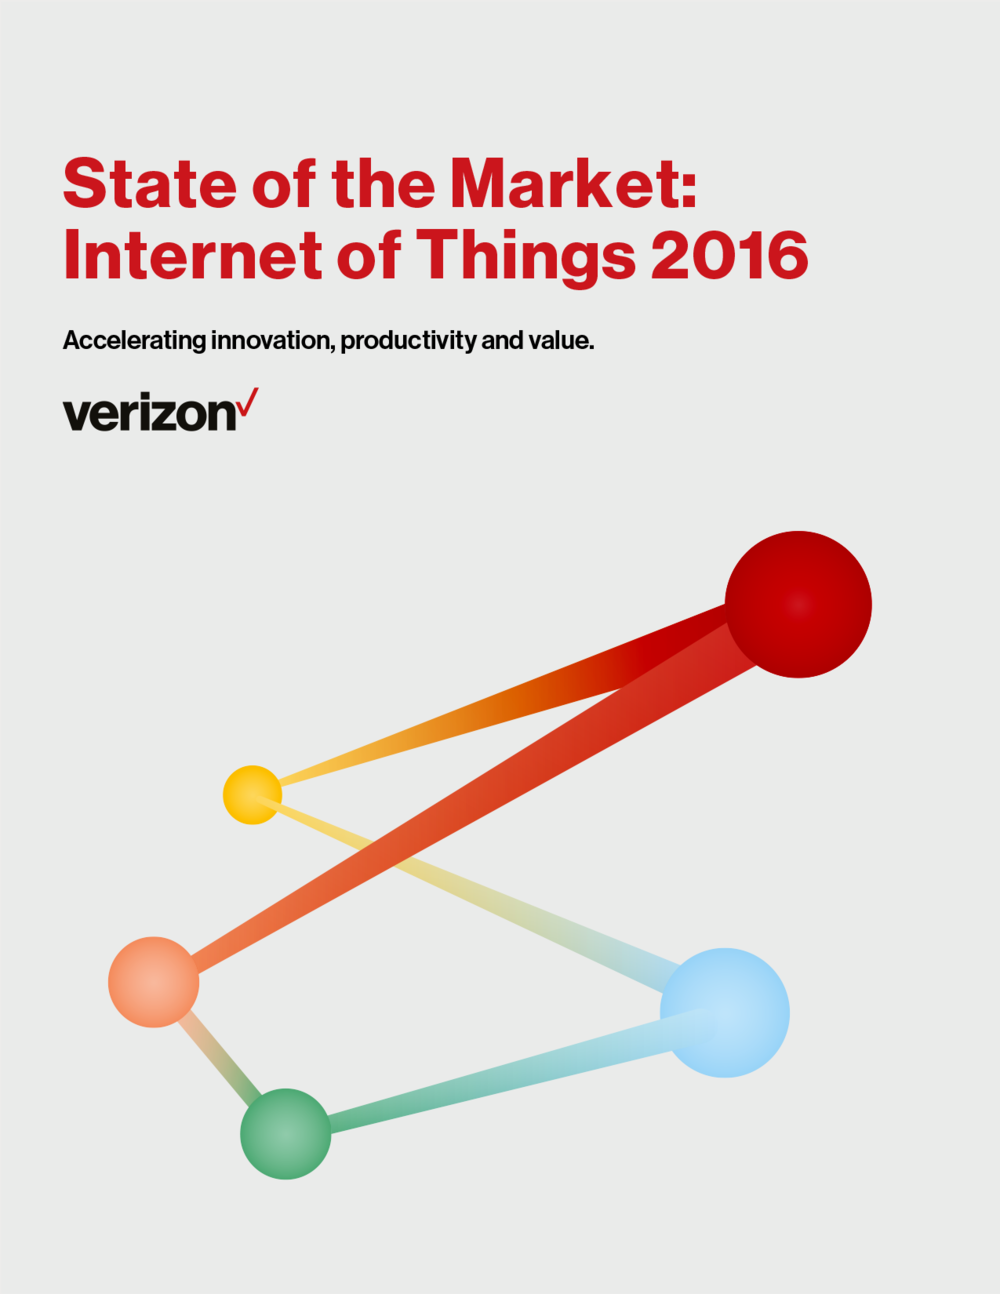 state-of-the-internet-of-things-market-report-2016-1.png